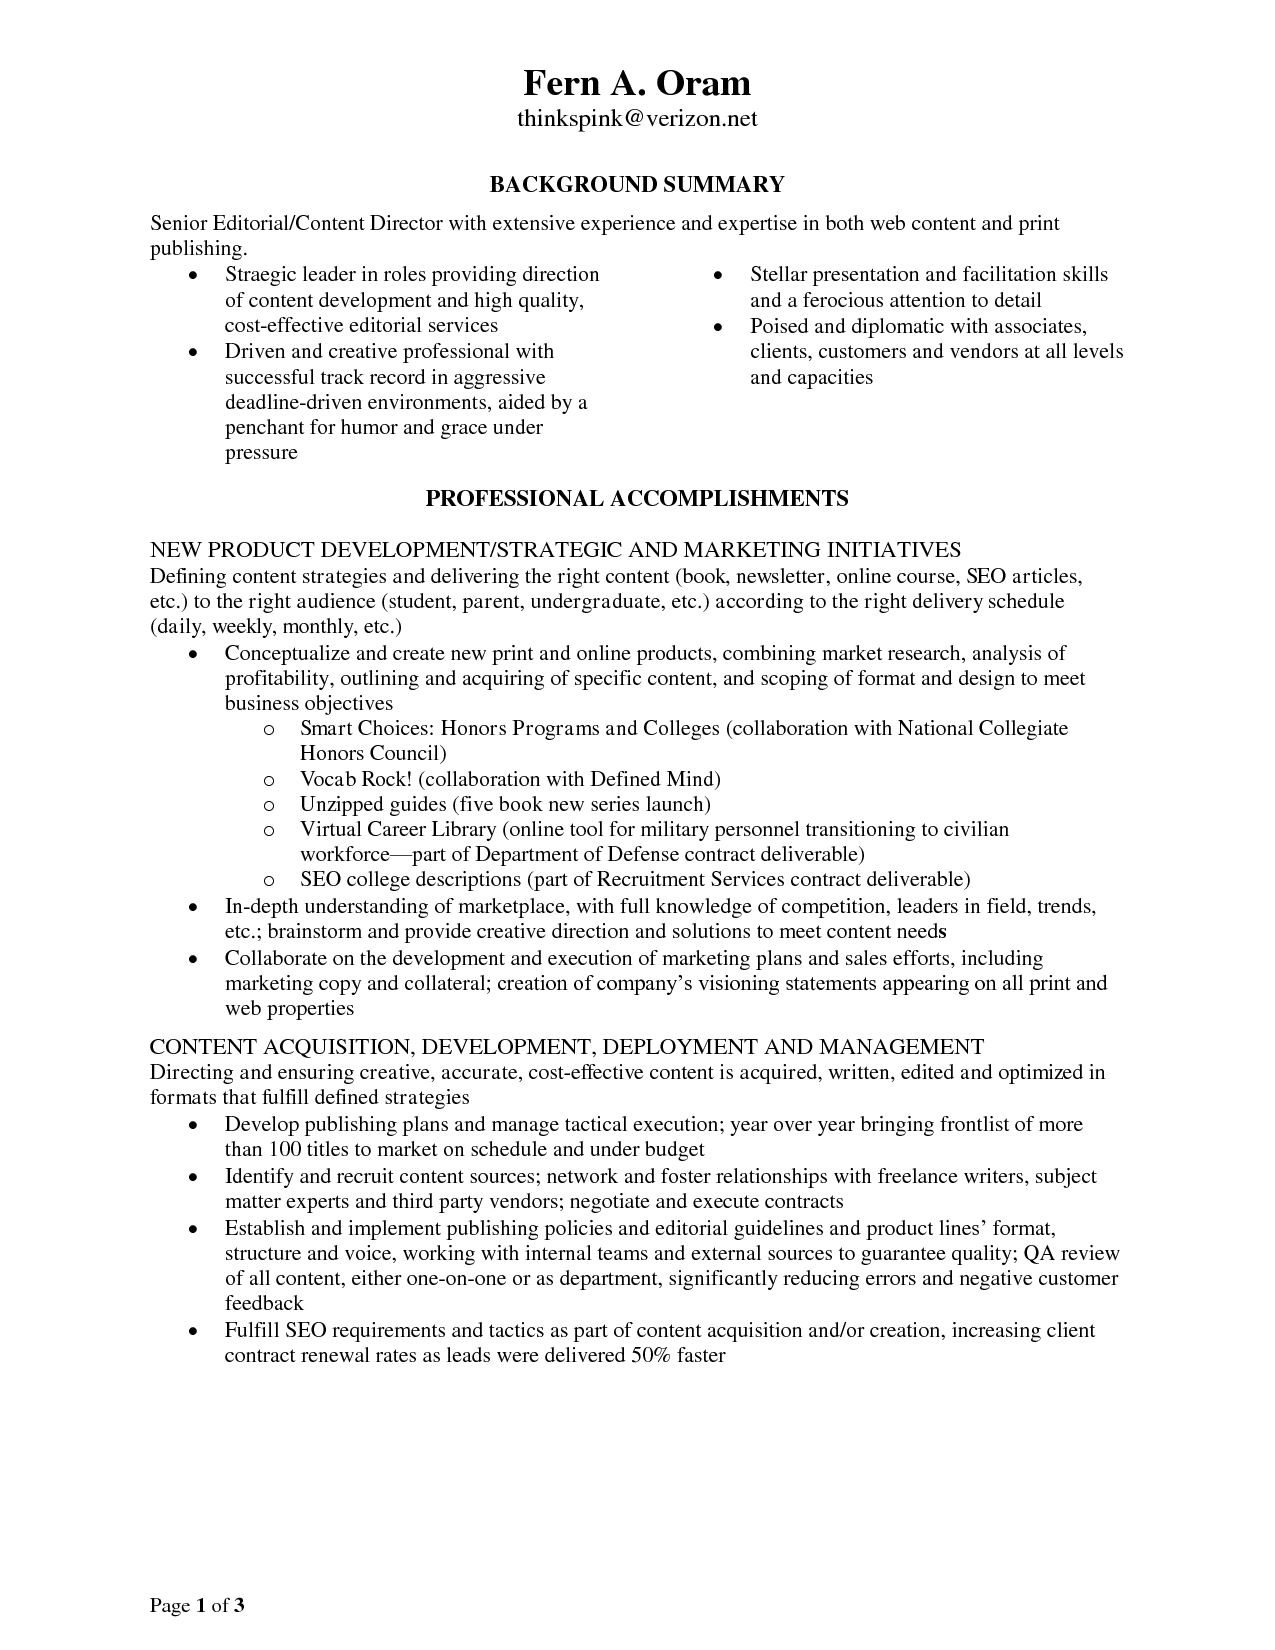 Sample Resume Template Monster Resume Templates Free Monster Resume Templates Free